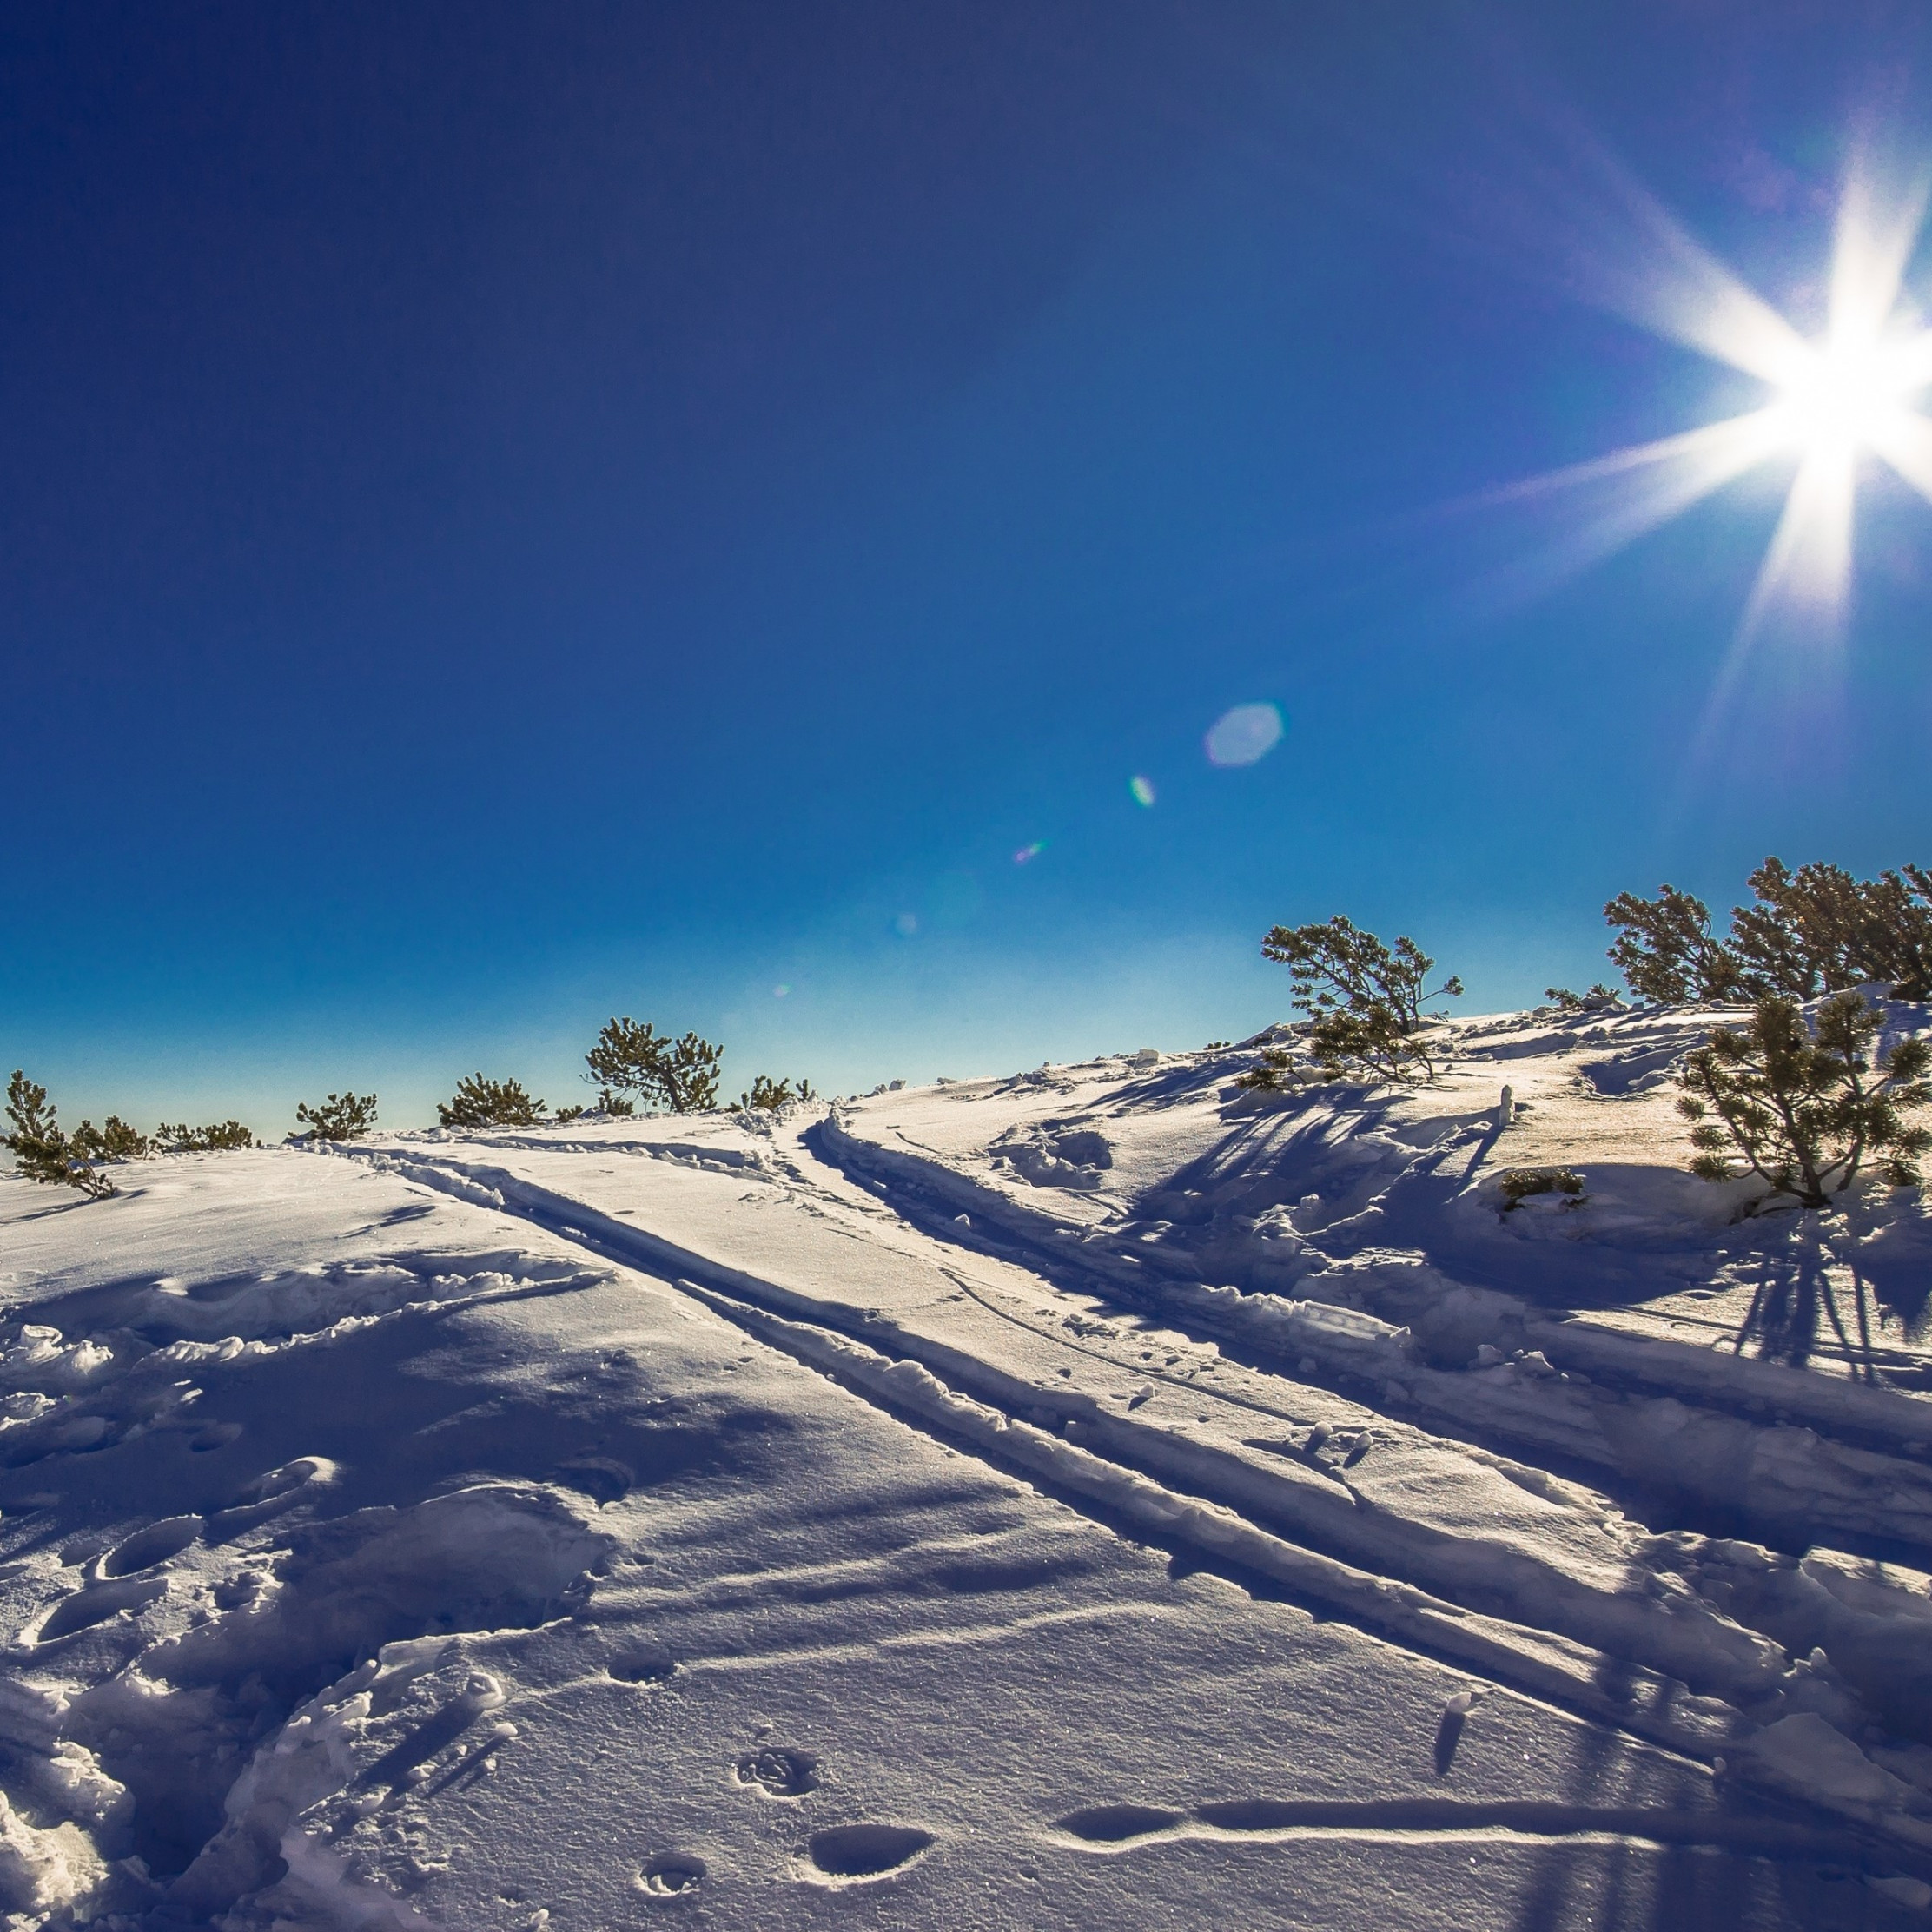 Sunny day in this Winter landscape | 2224x2224 wallpaper